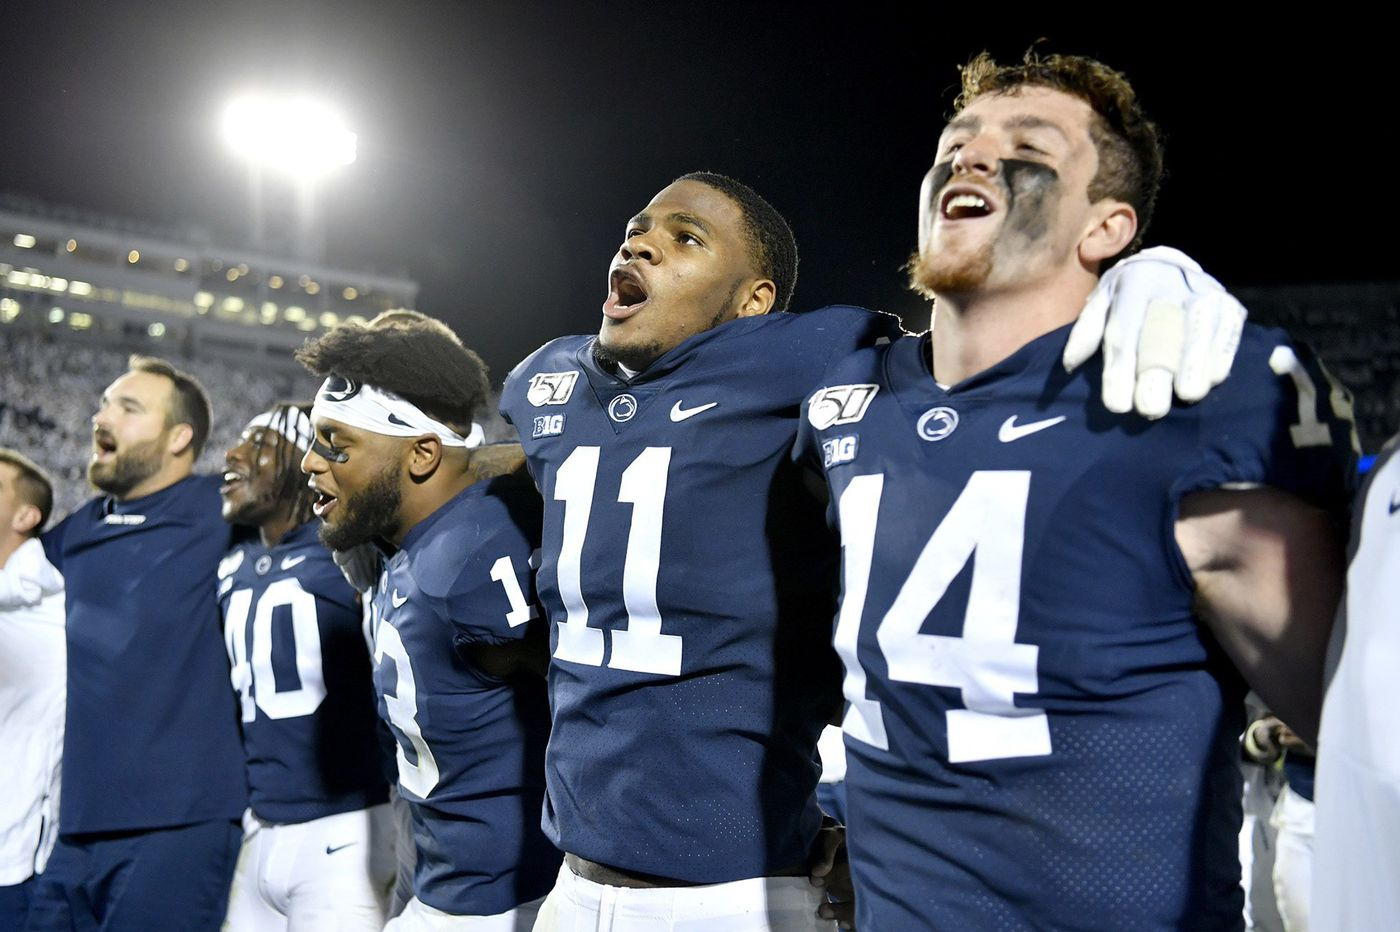 Penn State's Sean Clifford still figuring out what kind of quarterback he wants to be